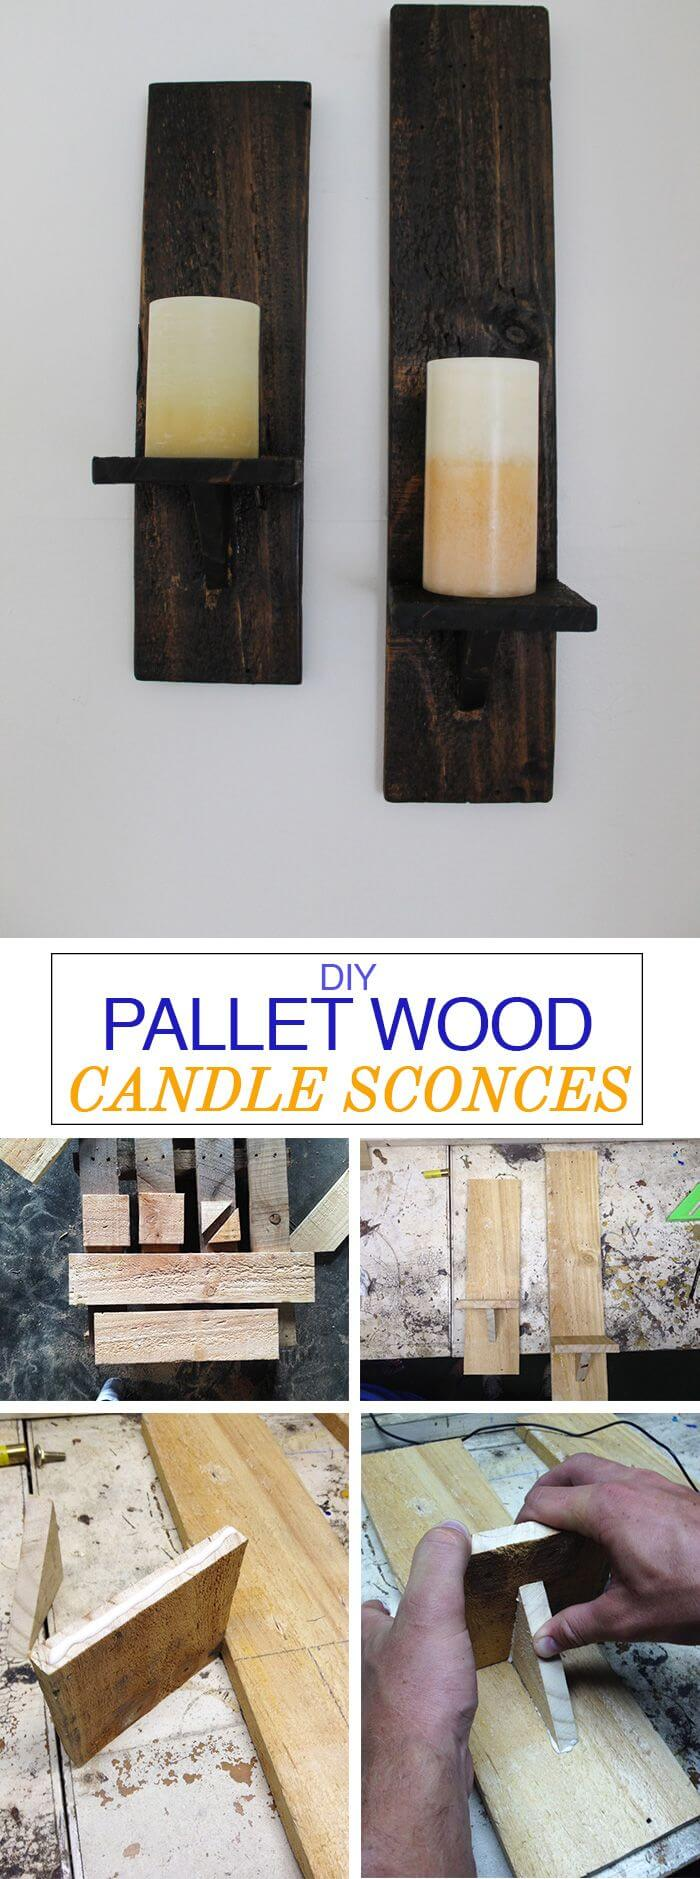 50 Best Diy Wood Craft Projects Ideas And Designs For 2021